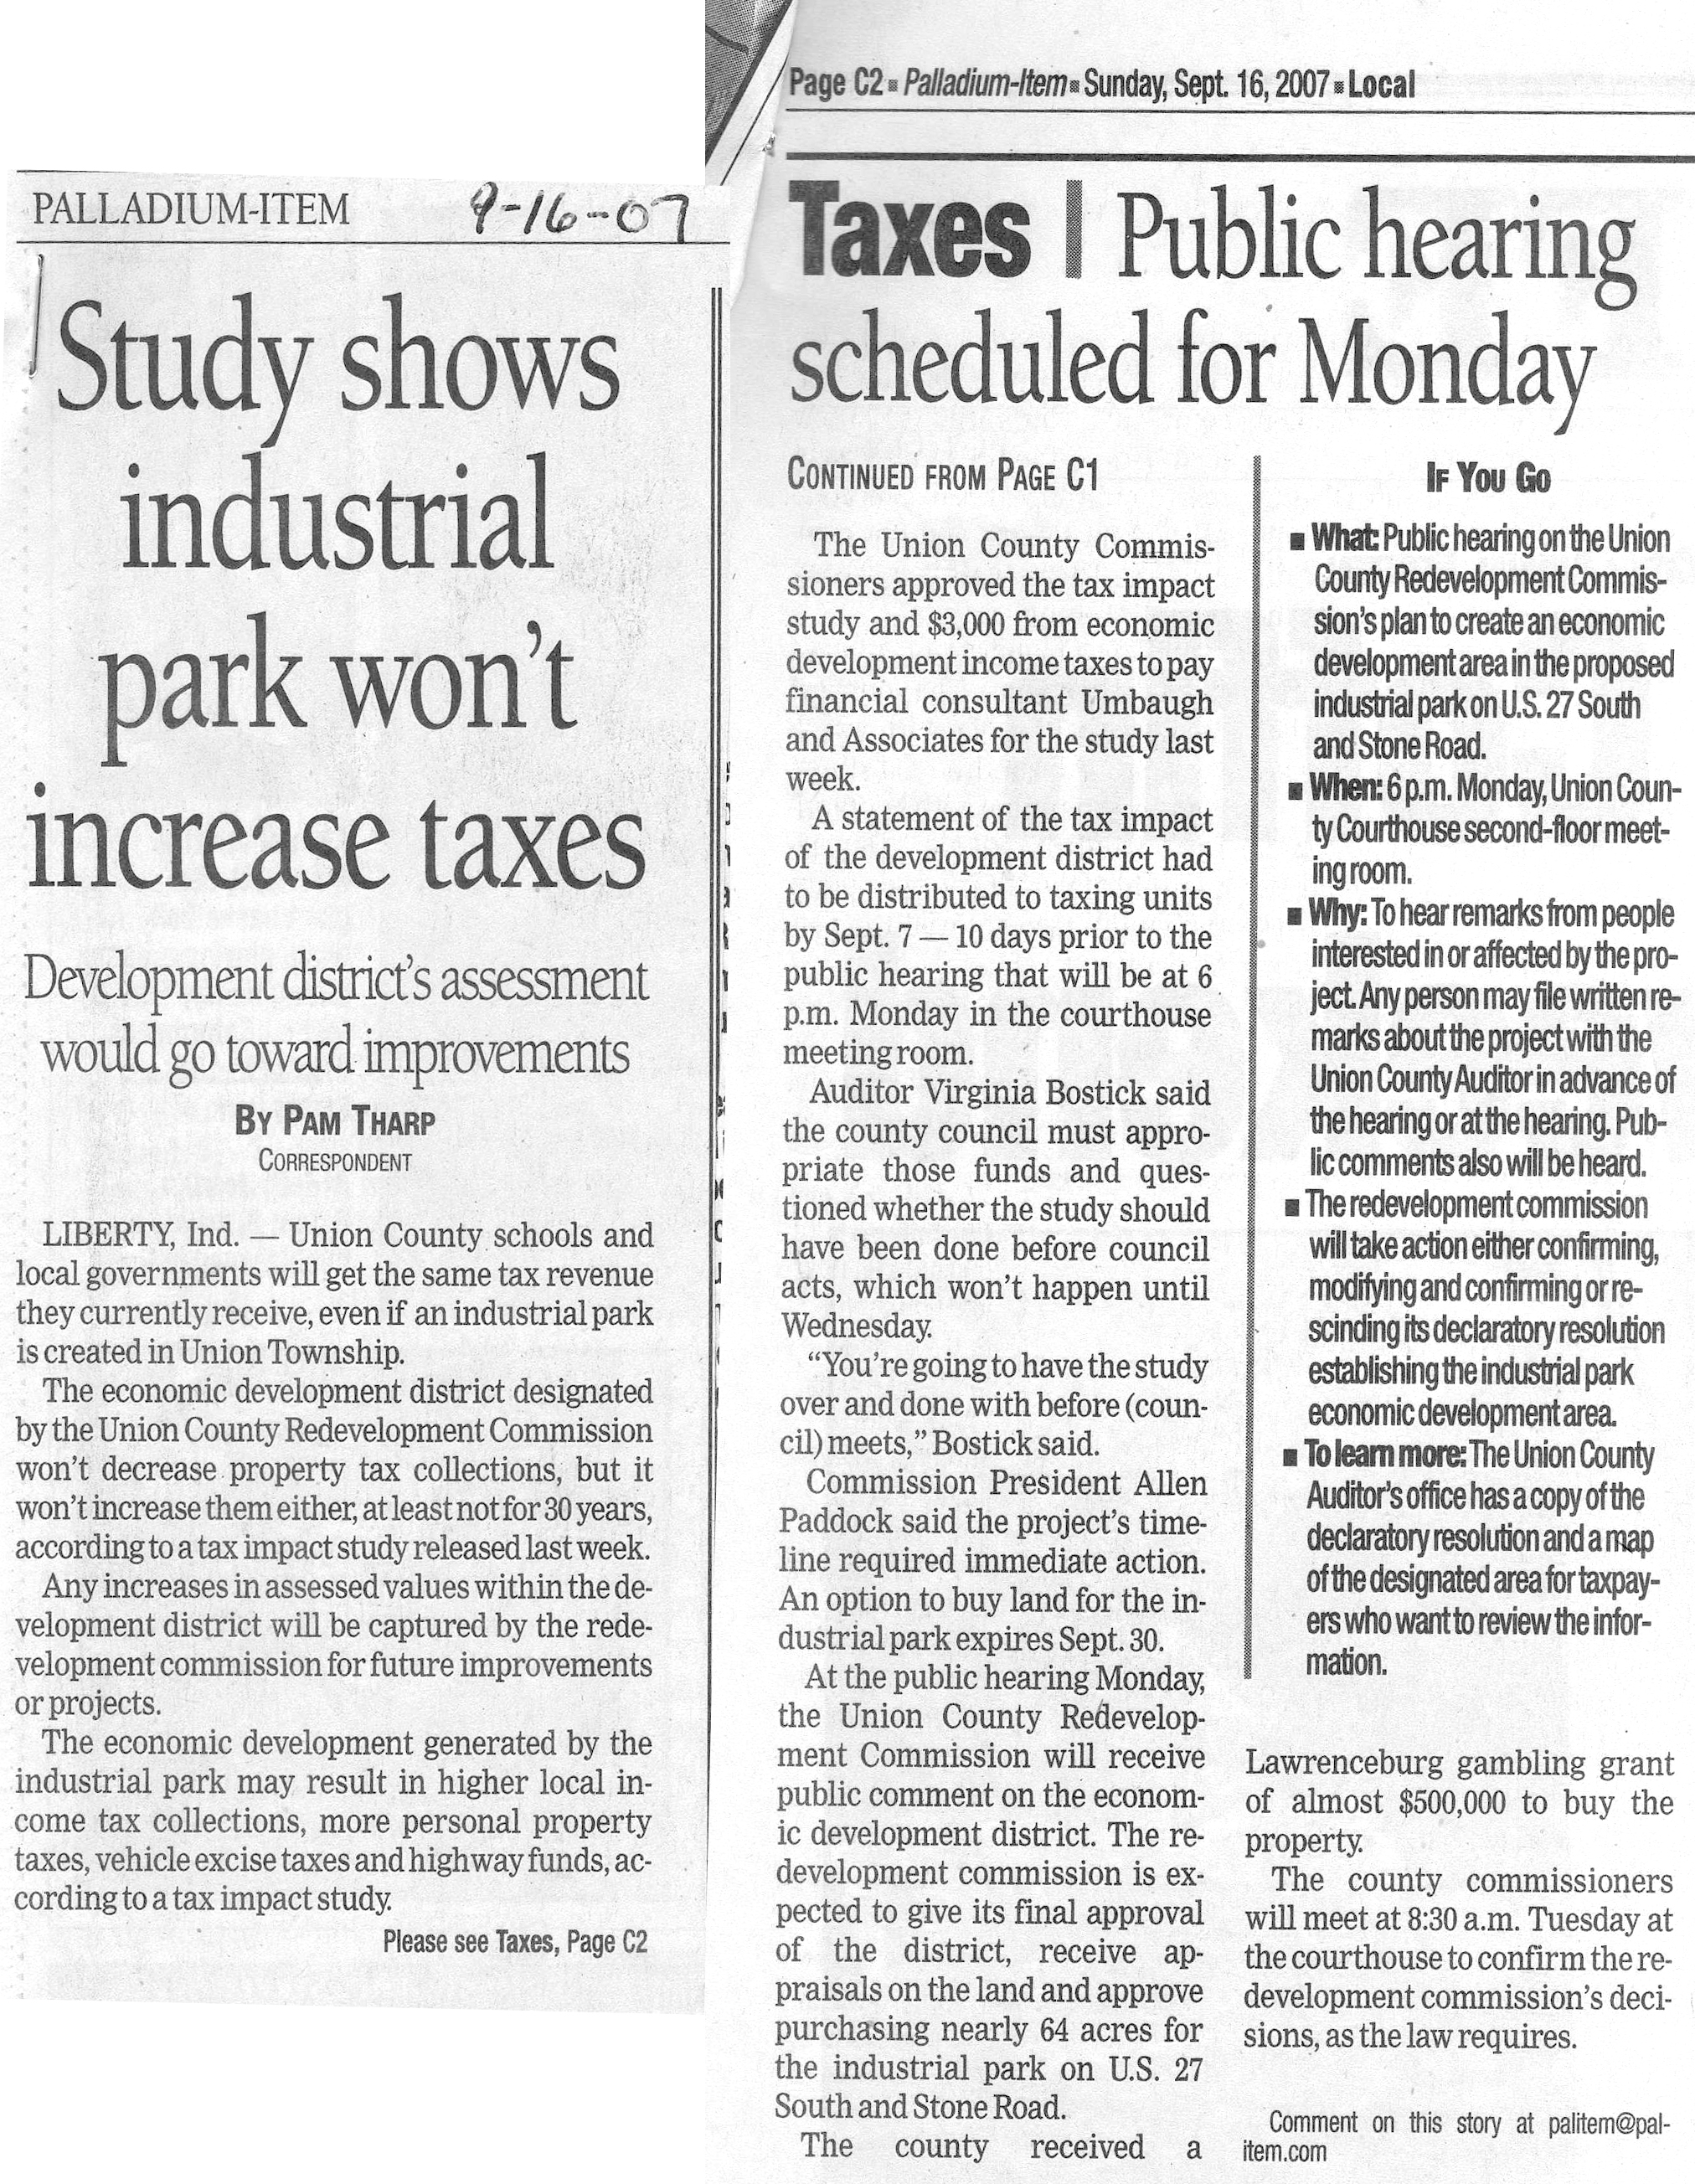 Study Shows Industrial Park Won't Increase Taxes - Palladium Item September 16, 2007